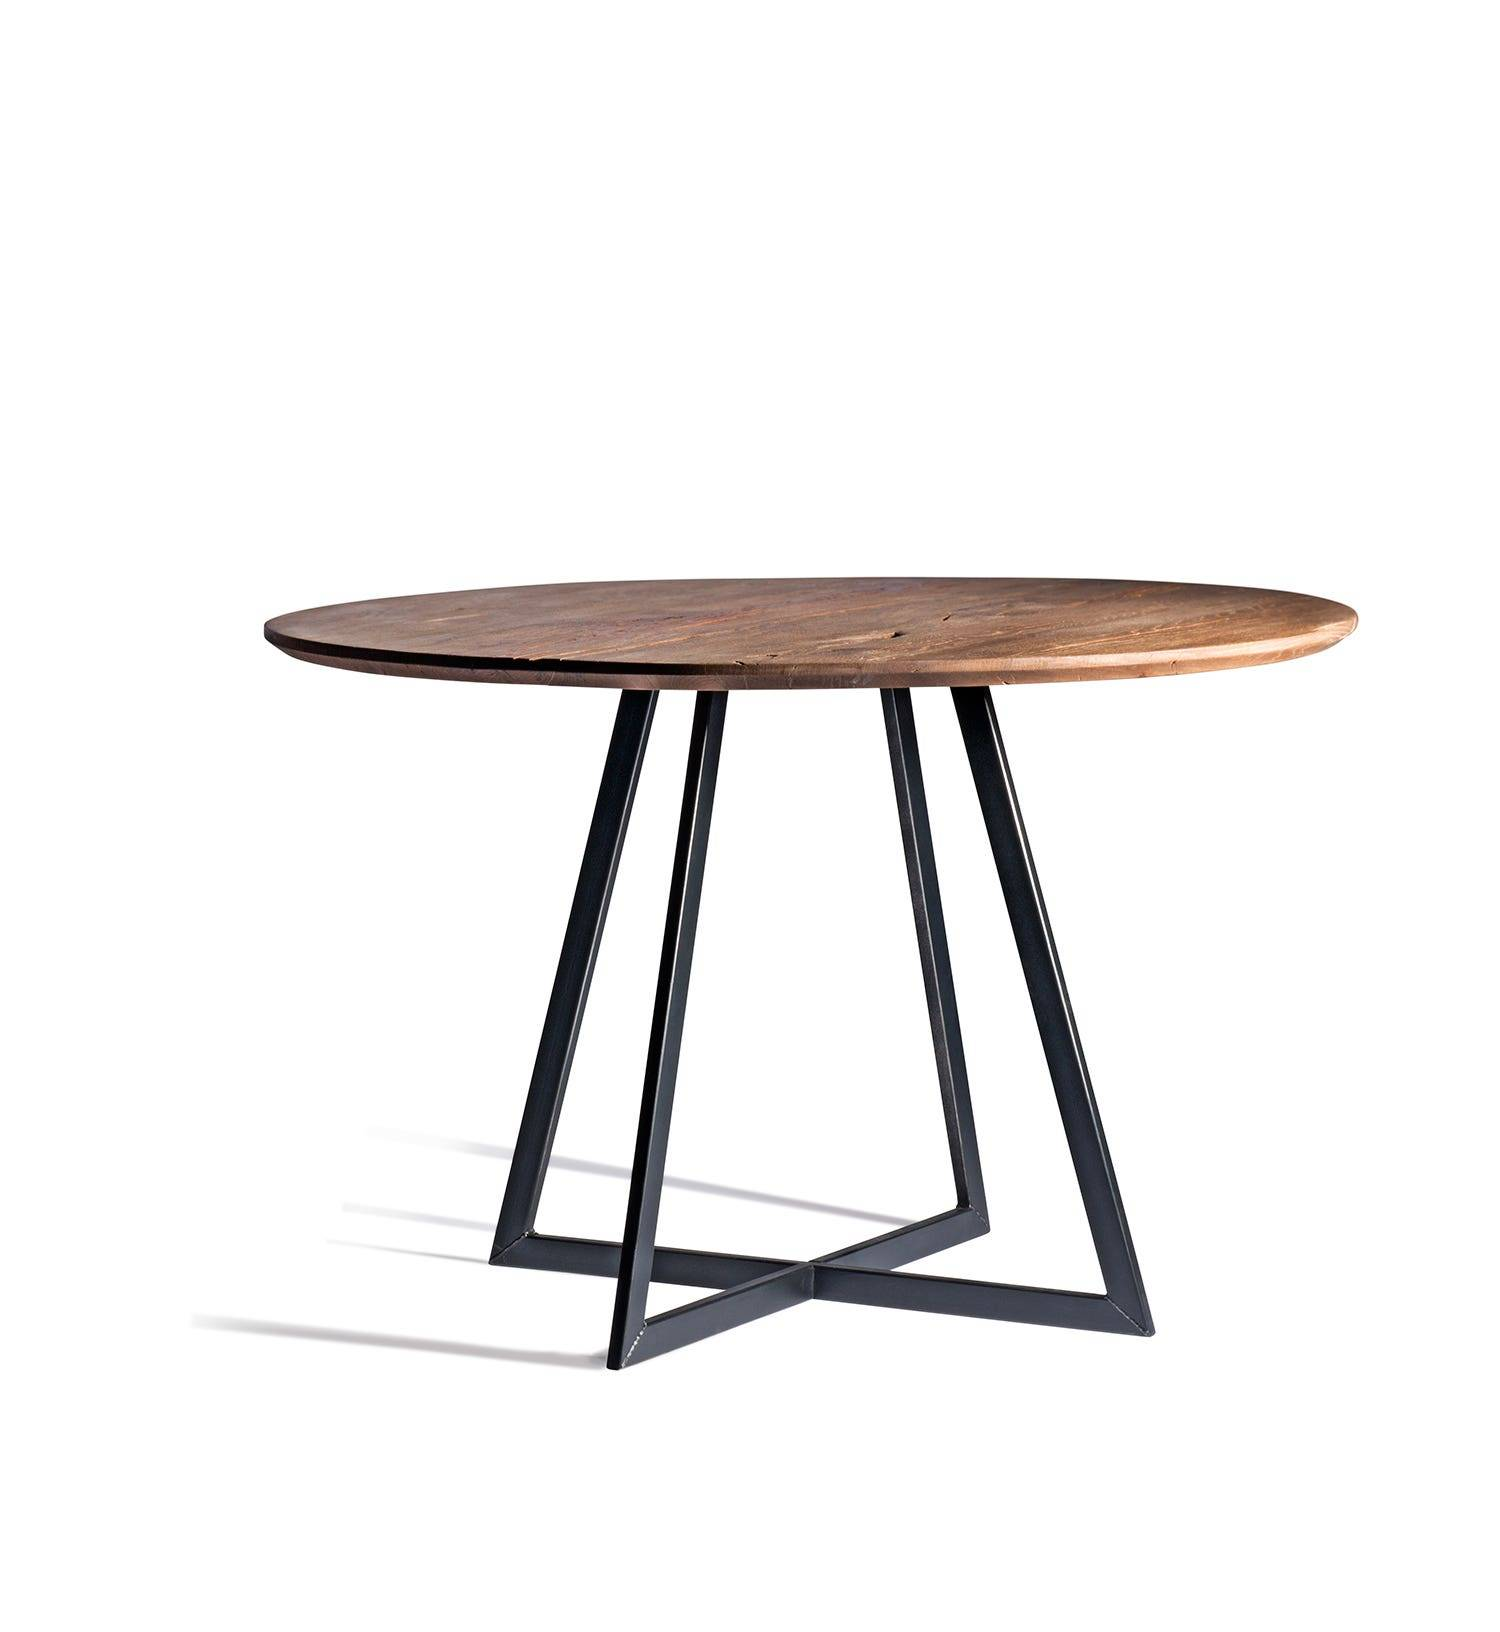 Industry West Mercer Dining Table